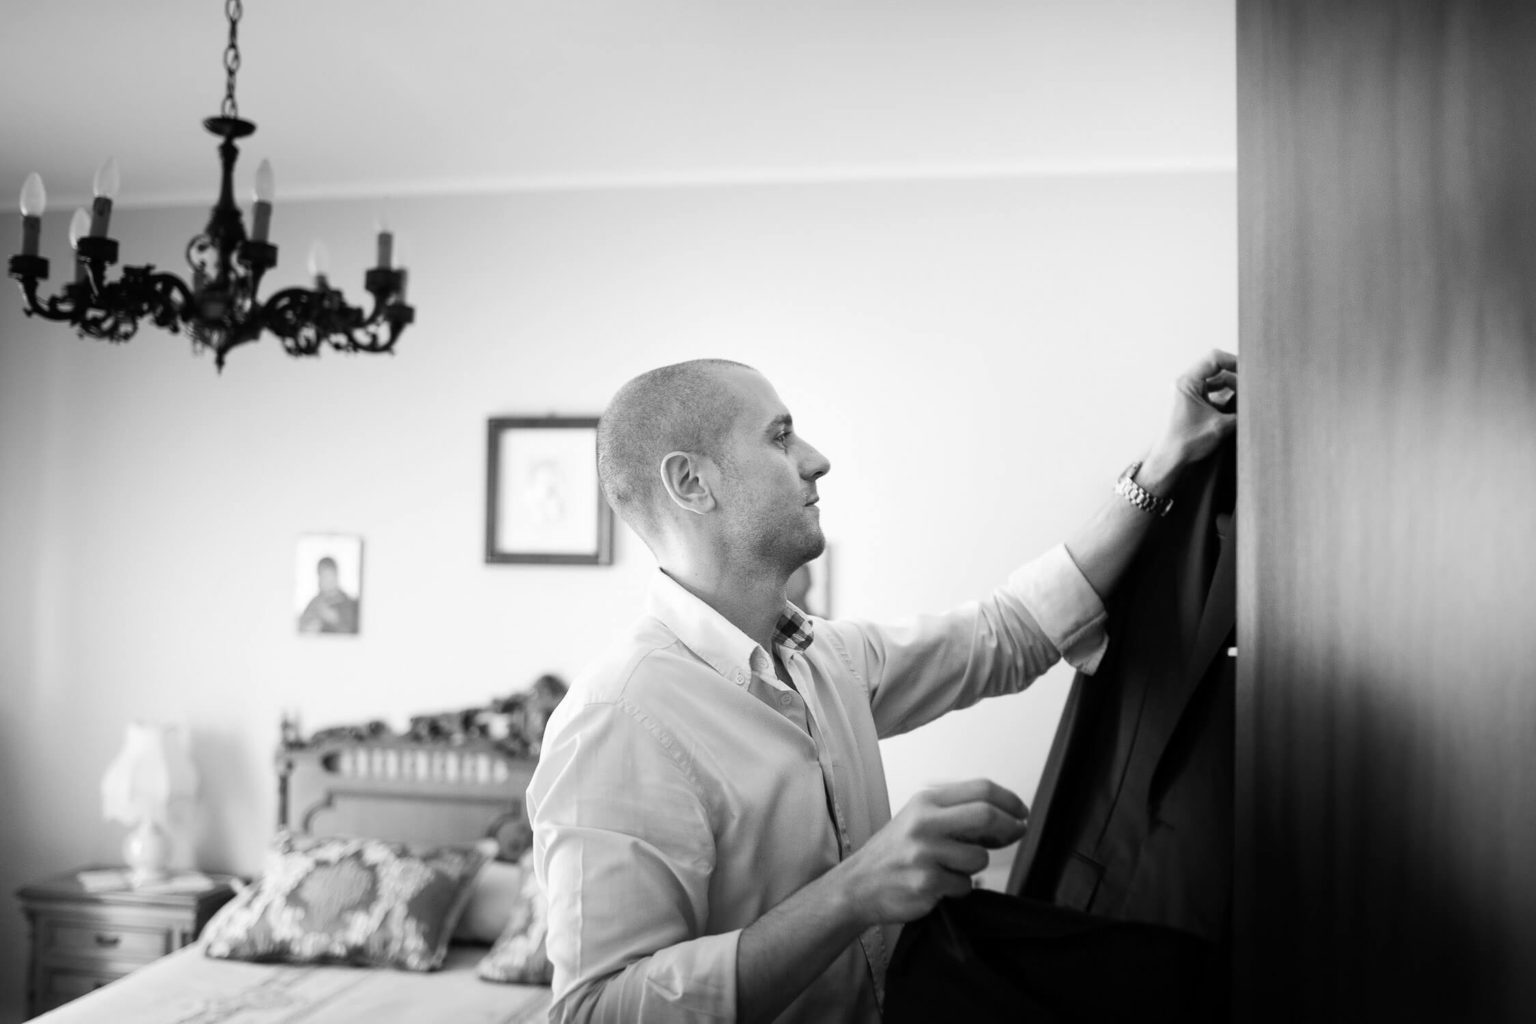 Preparations for groom, black and white photography by Nino Lombaro